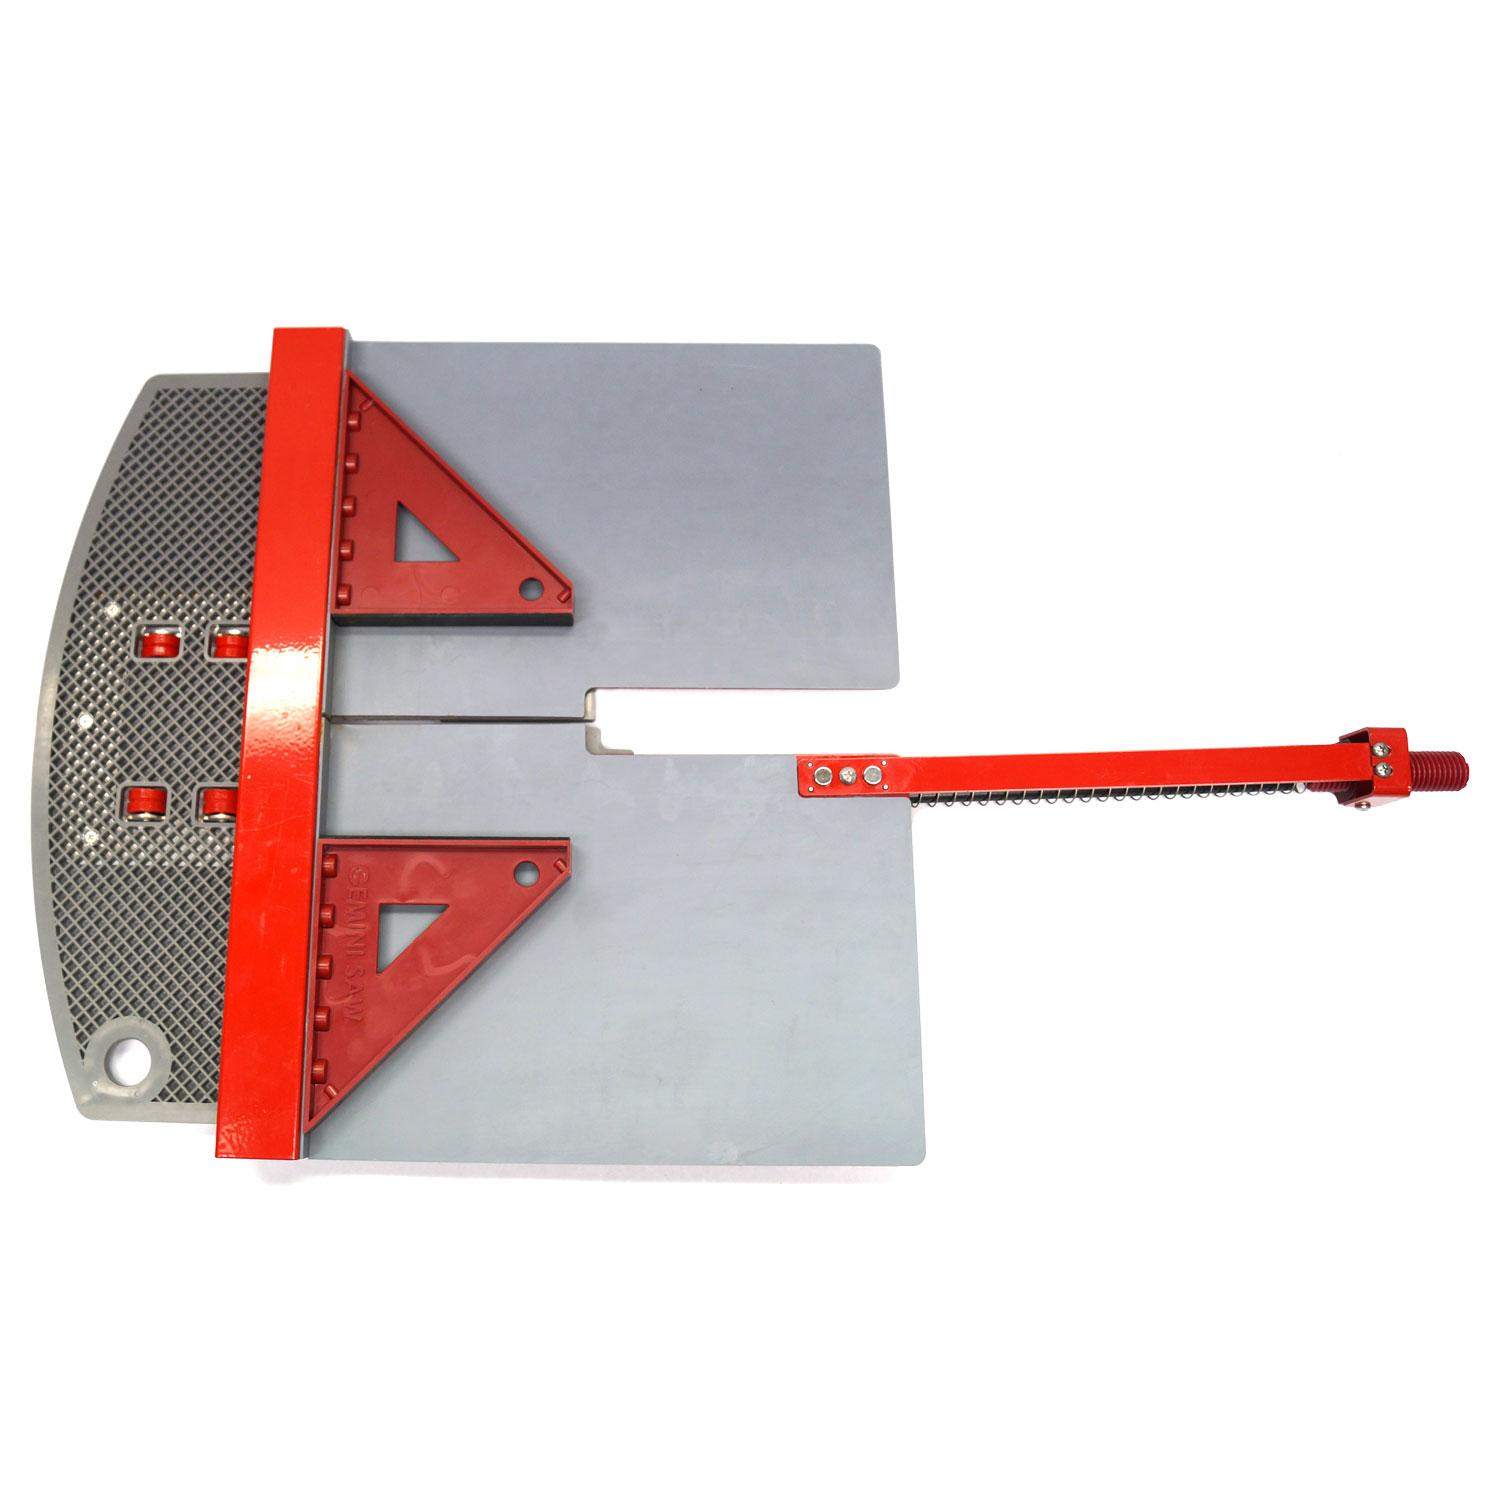 Semi-Automatic Floating Tray for Taurus 3 Ring Saw